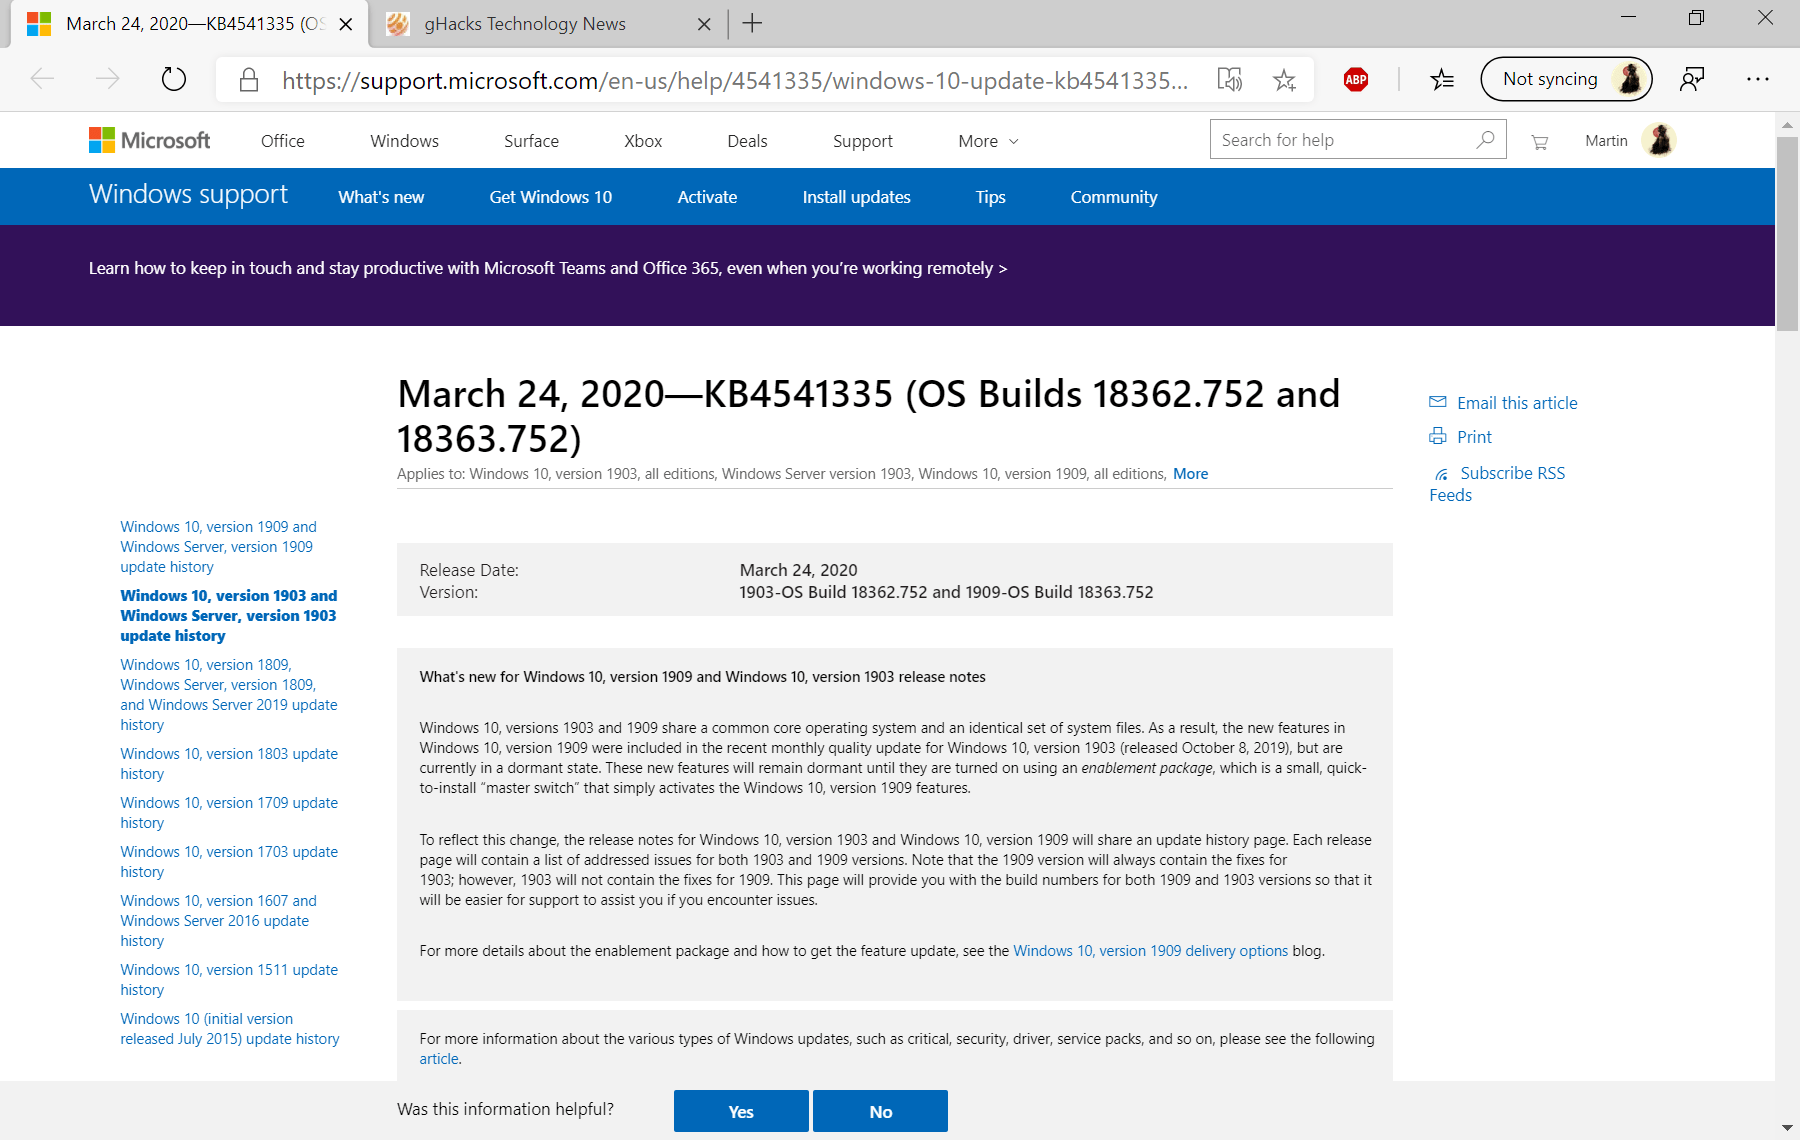 KB4541335 for Windows 10 1903 and 1909 released